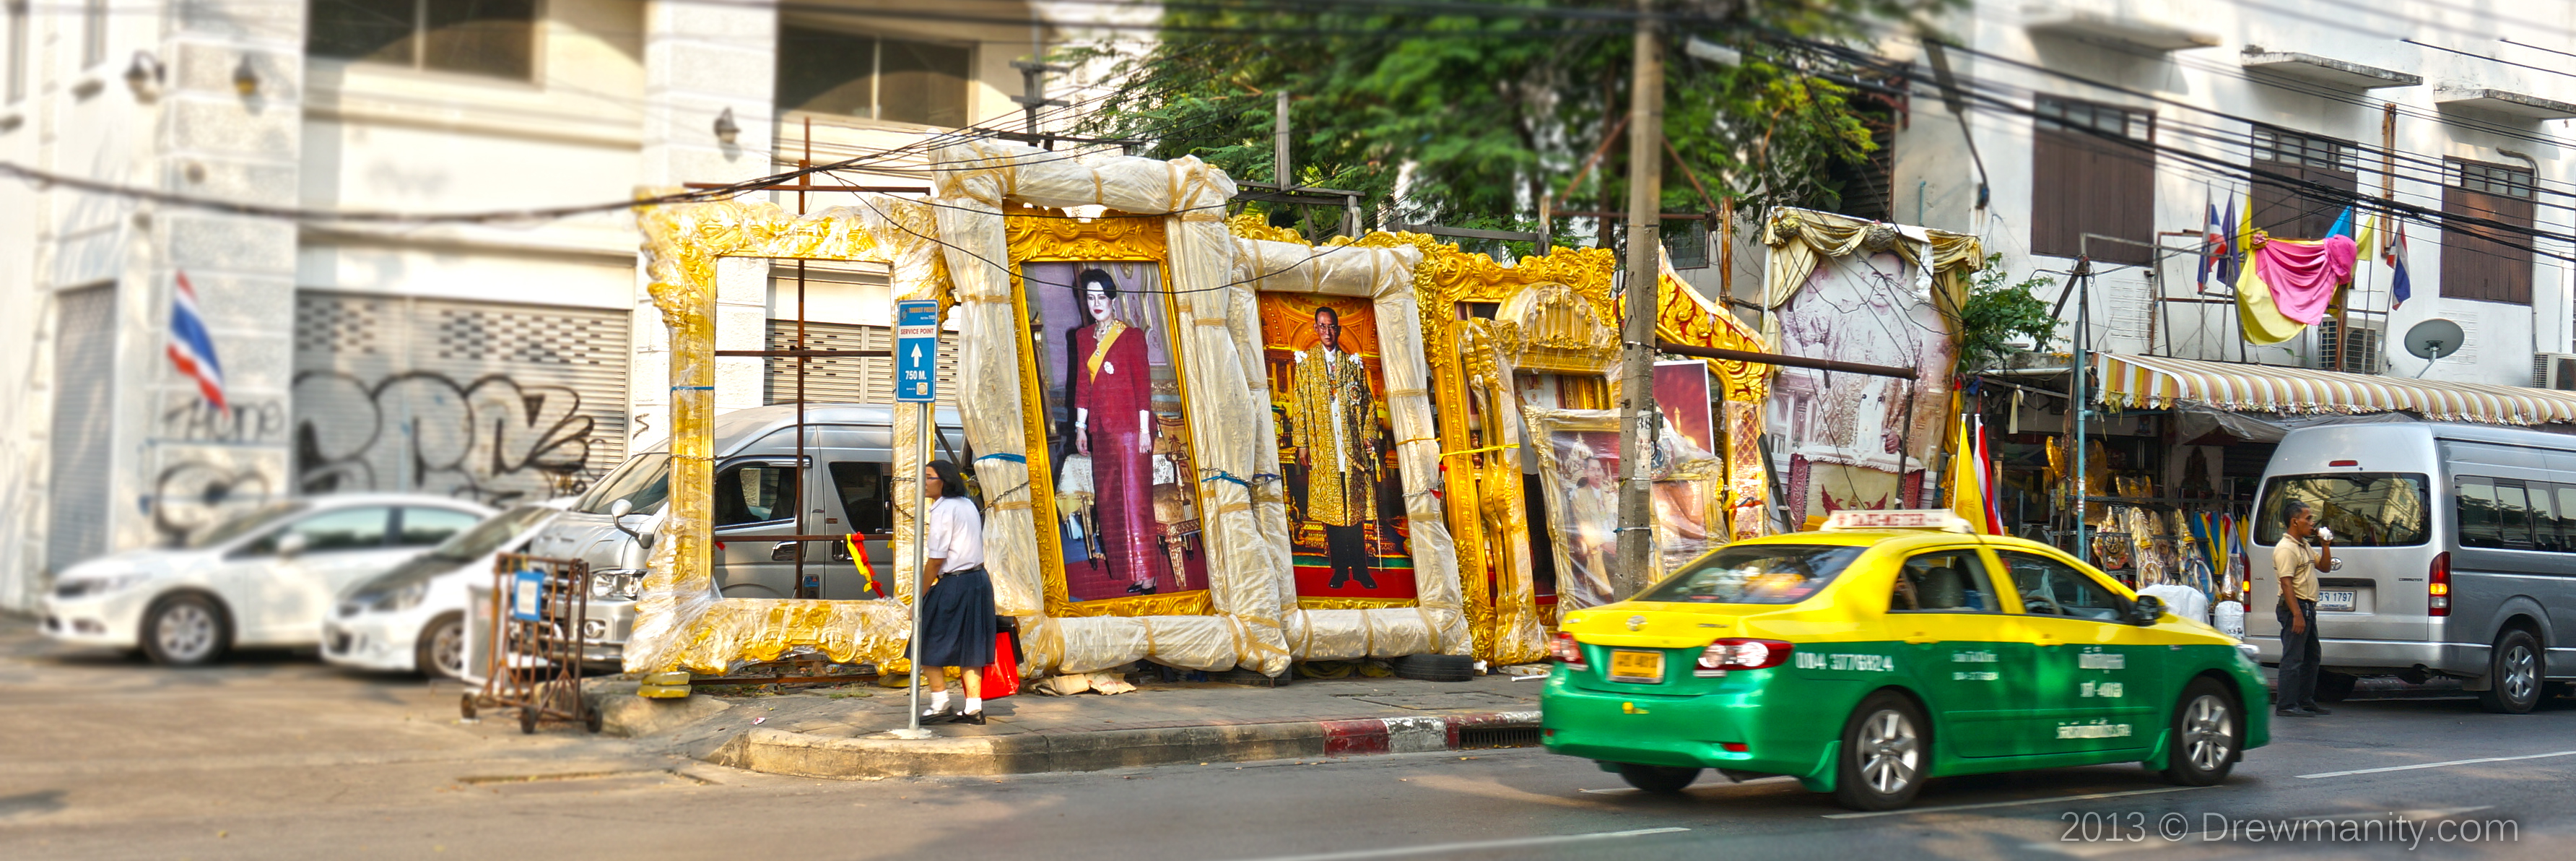 King and queen on thailand in bangkok